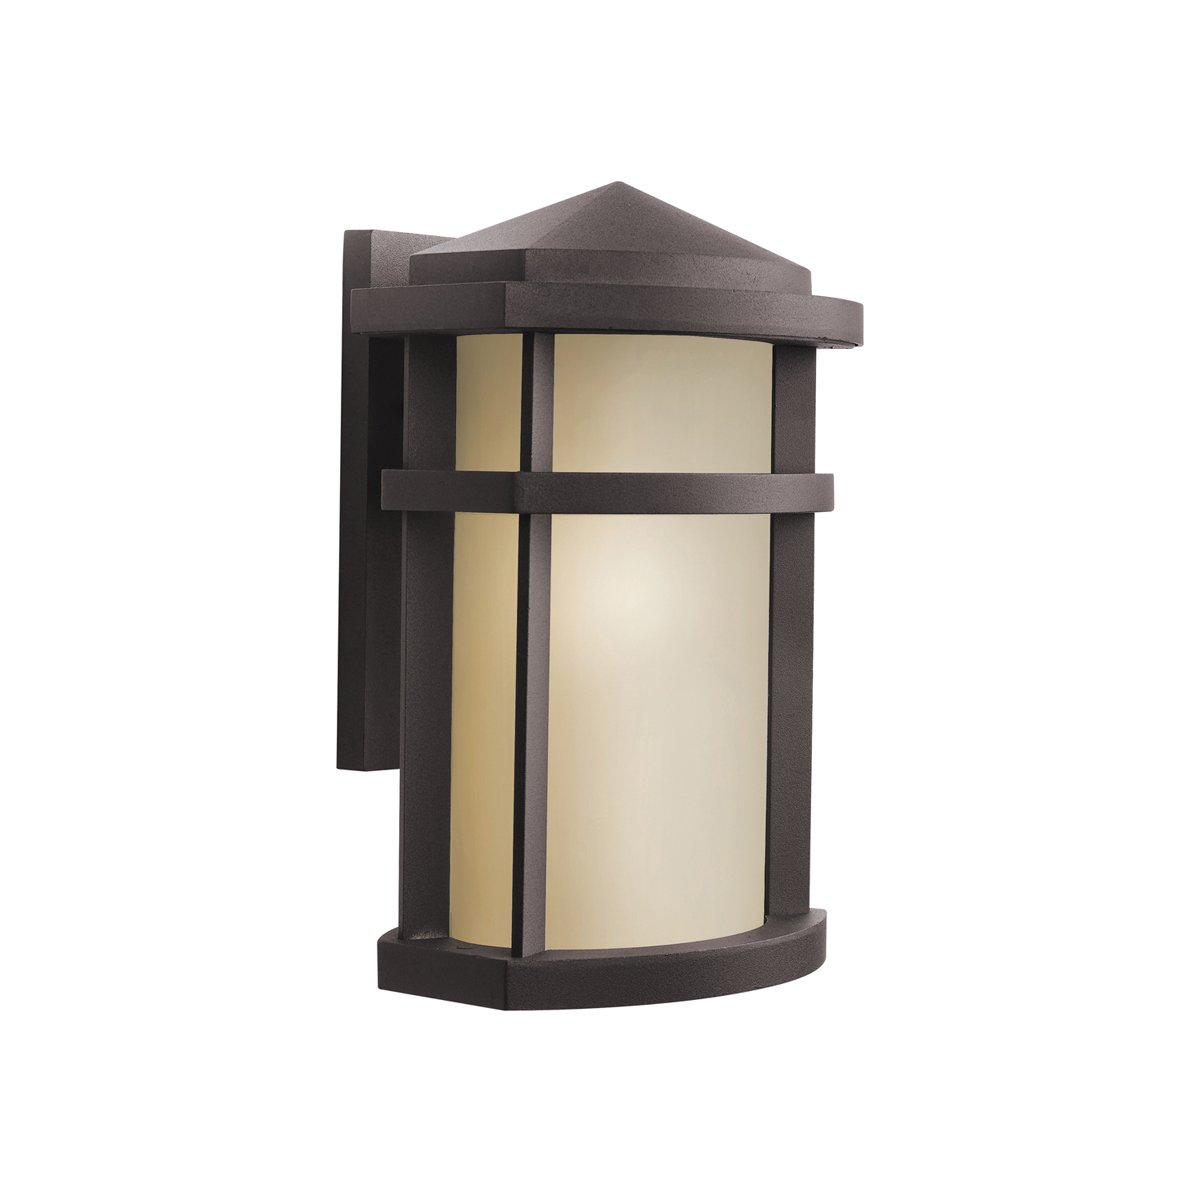 Kichler brushed nickel wall mt 1lt incandescent kichler brushed nickel - Kichler Lighting 9166az Lantana 1 Light Incandescent Outdoor Wall Mount Lantern Architectural Bronze With Light Umber Glass Wall Porch Lights Amazon